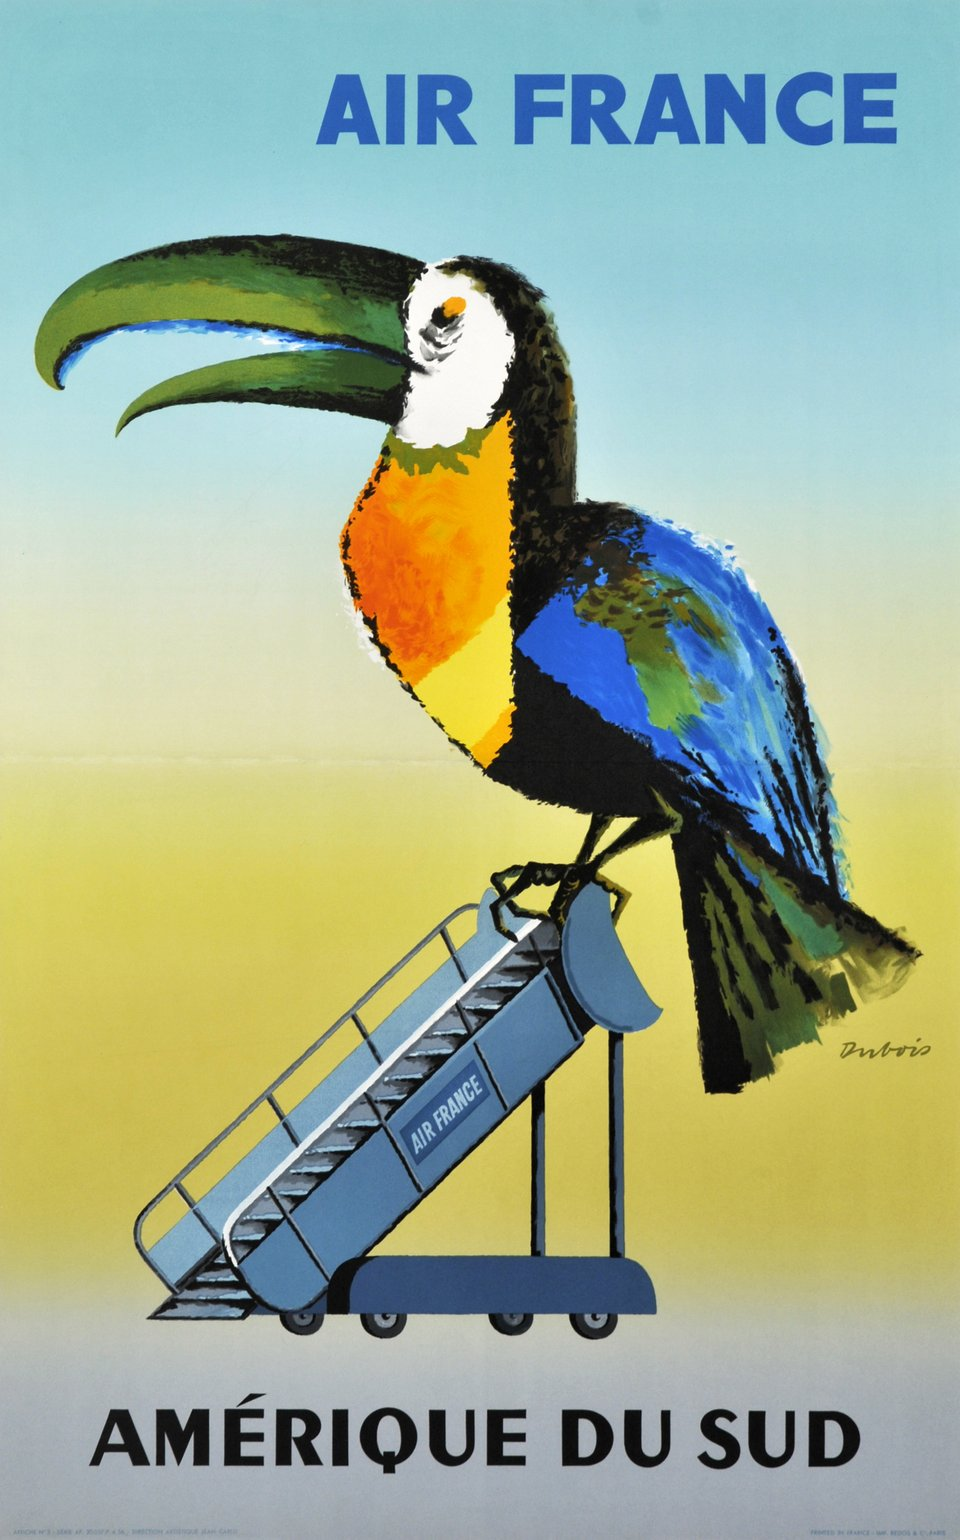 Air France, Amérique du Sud – Vintage poster – Jacques DUBOIS – 1956